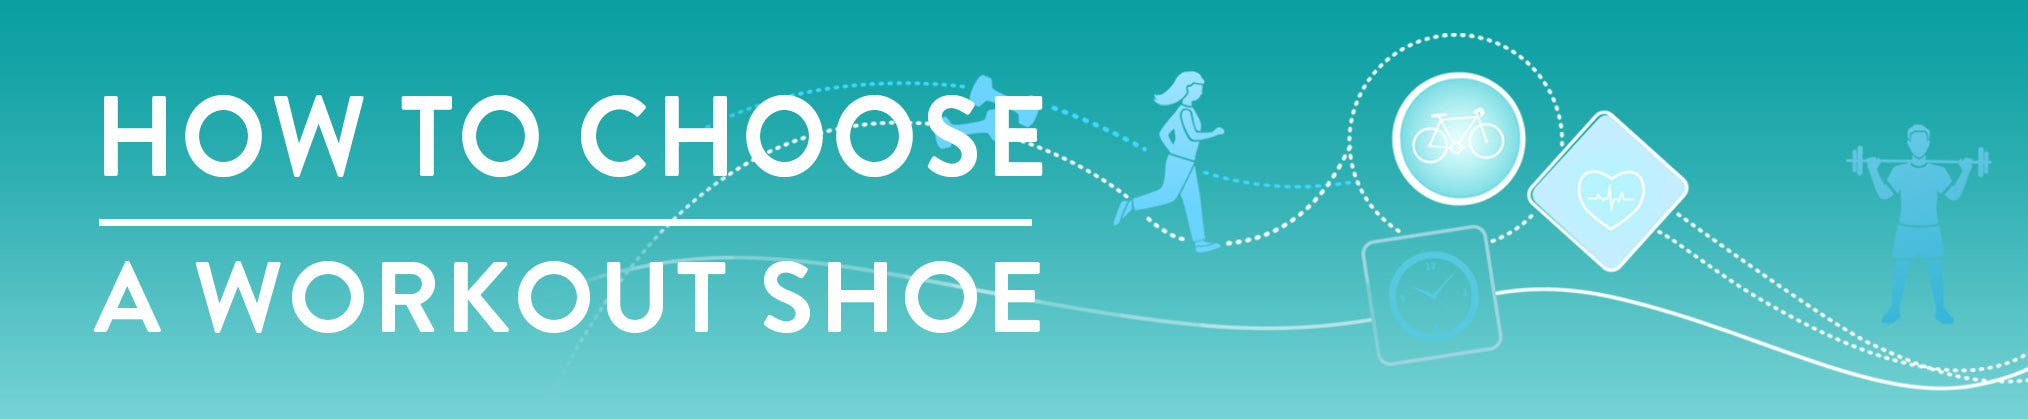 How to choose a workout shoe